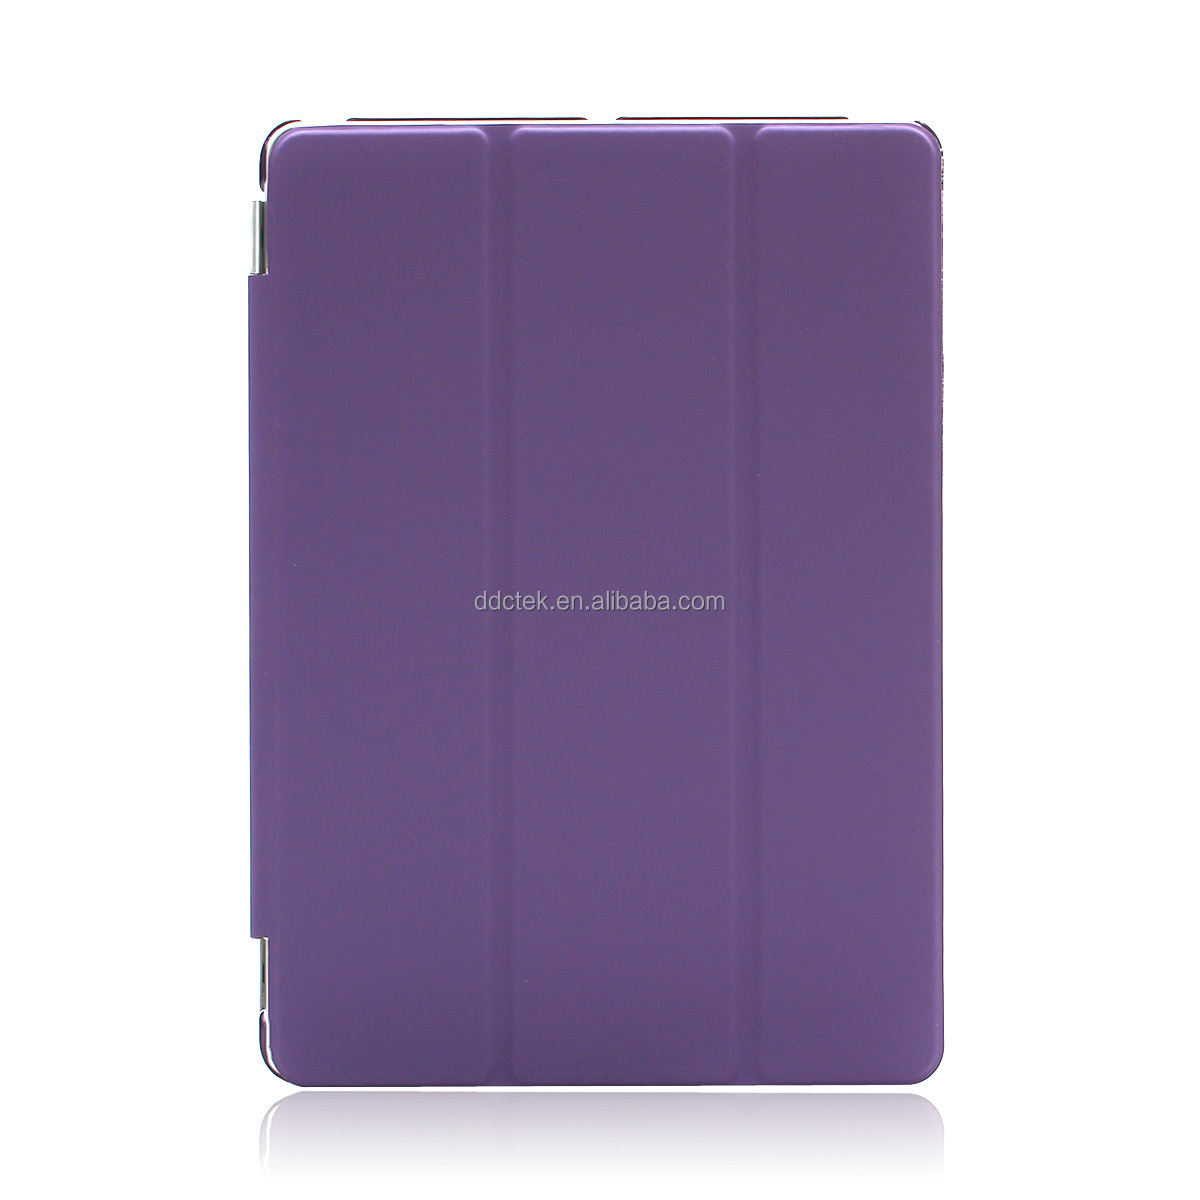 Purple PC PU leather case cover for ipad mini with stand vision